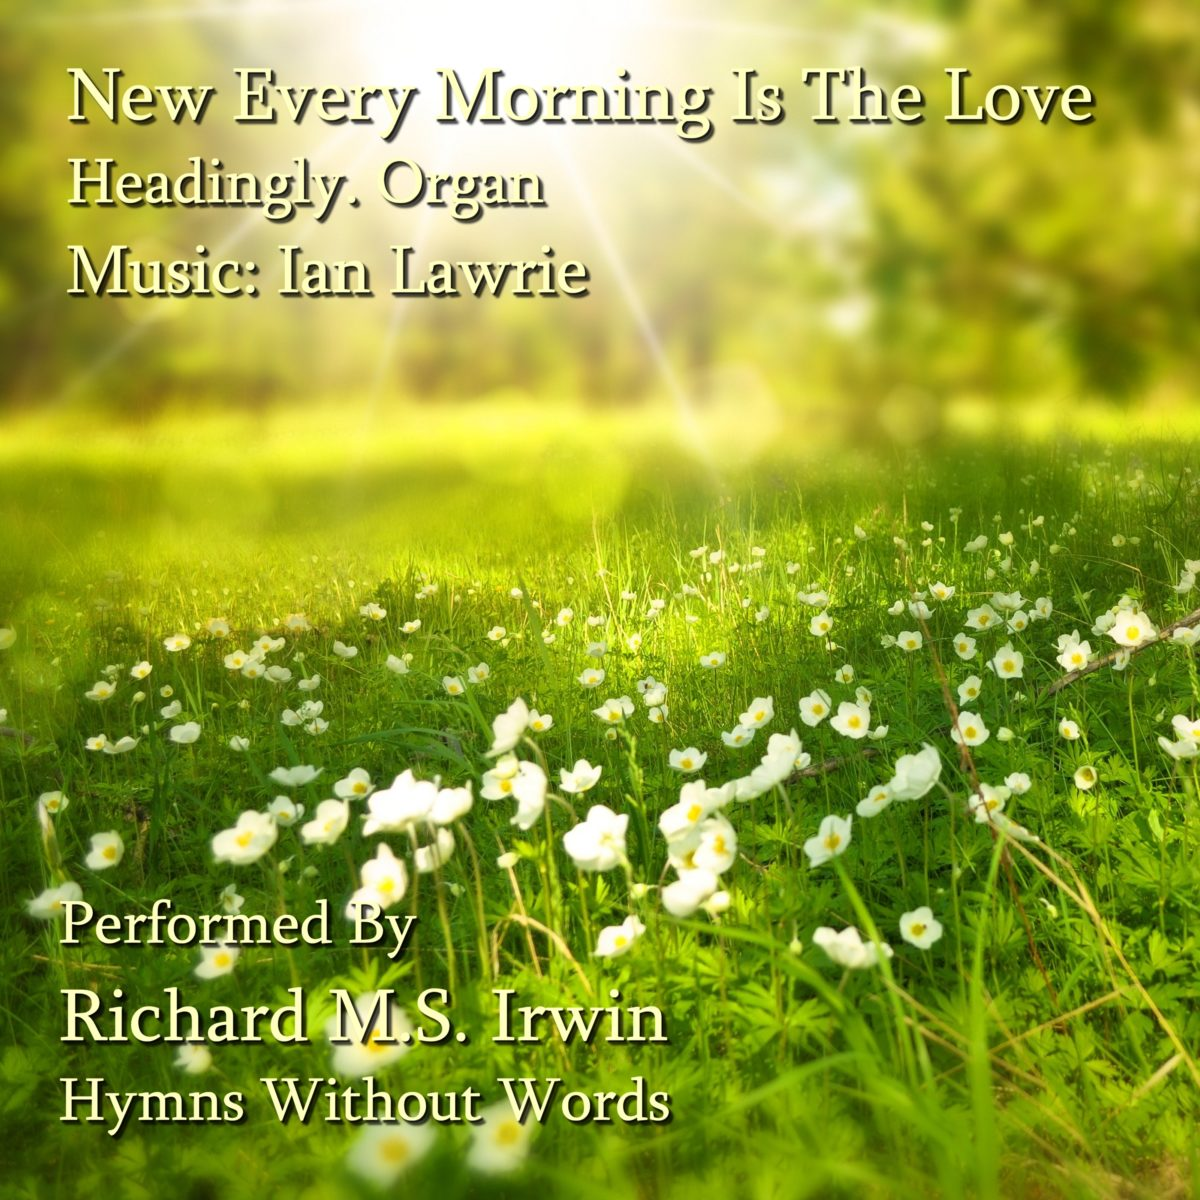 New Every Morning Is The Love (Headingley – 5 Verses) – Organ